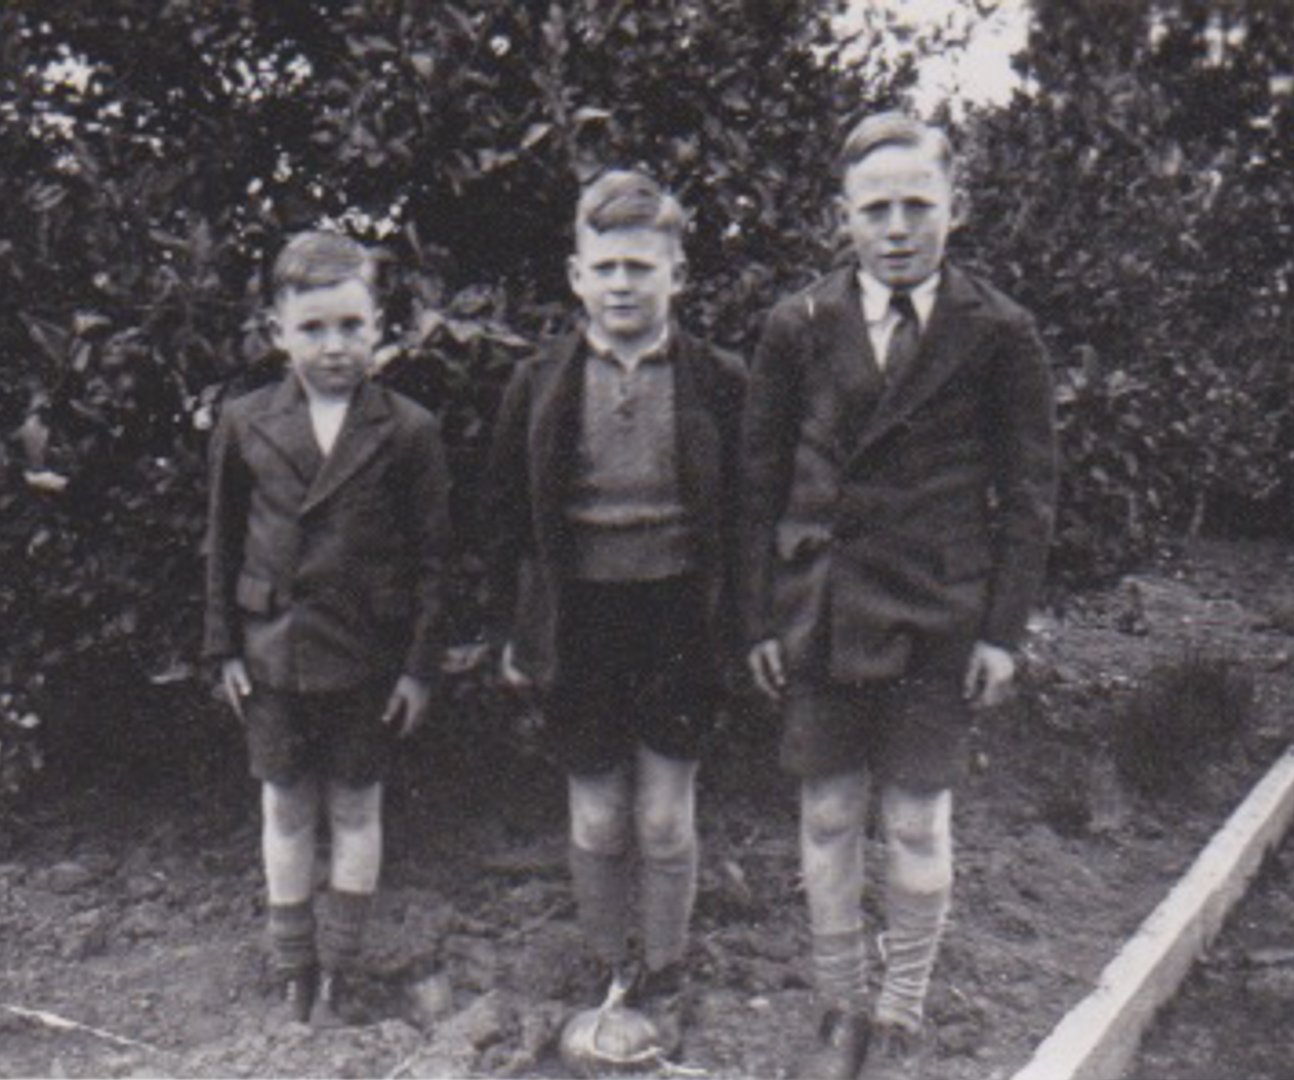 From left, Bruce, Alan and Robert Draper in Heyfield, Gippsland c 1947